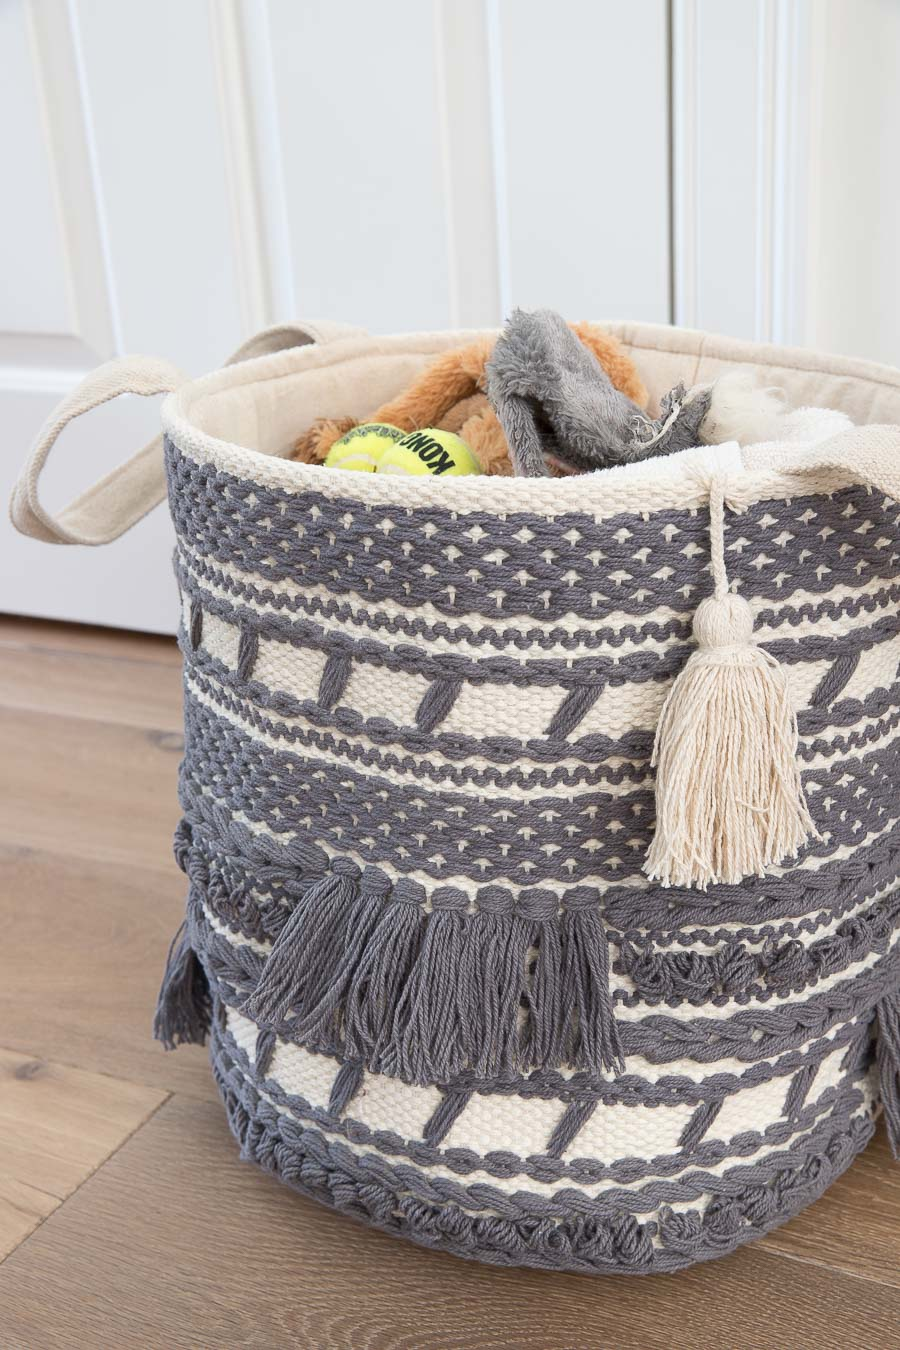 This macrame basket is perfect for kid or dog toys!